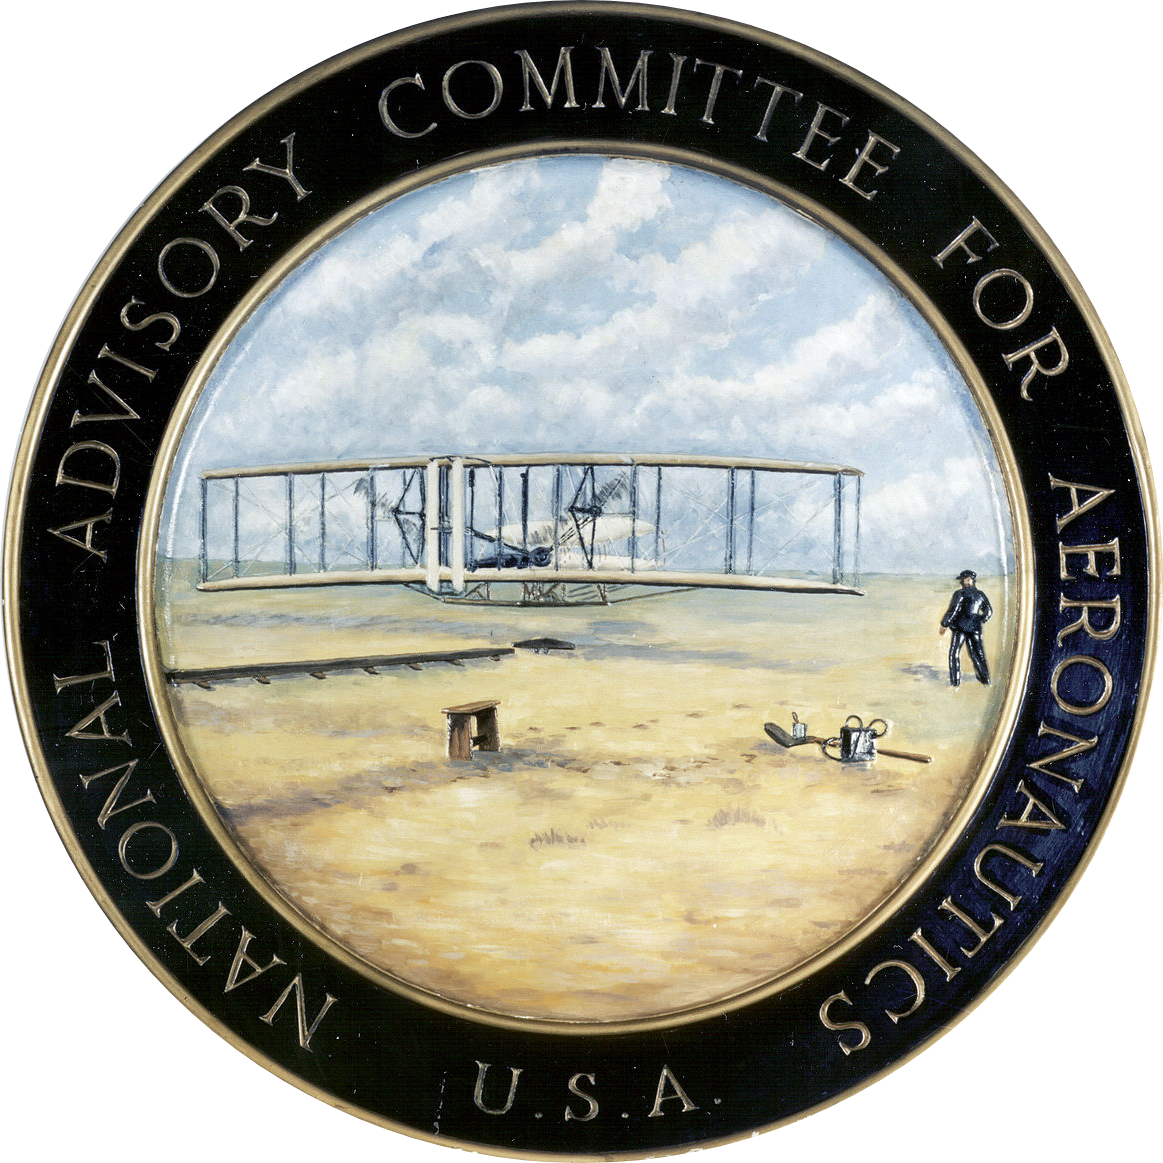 National Advisory Committee for Aeronautics - Wikipedia